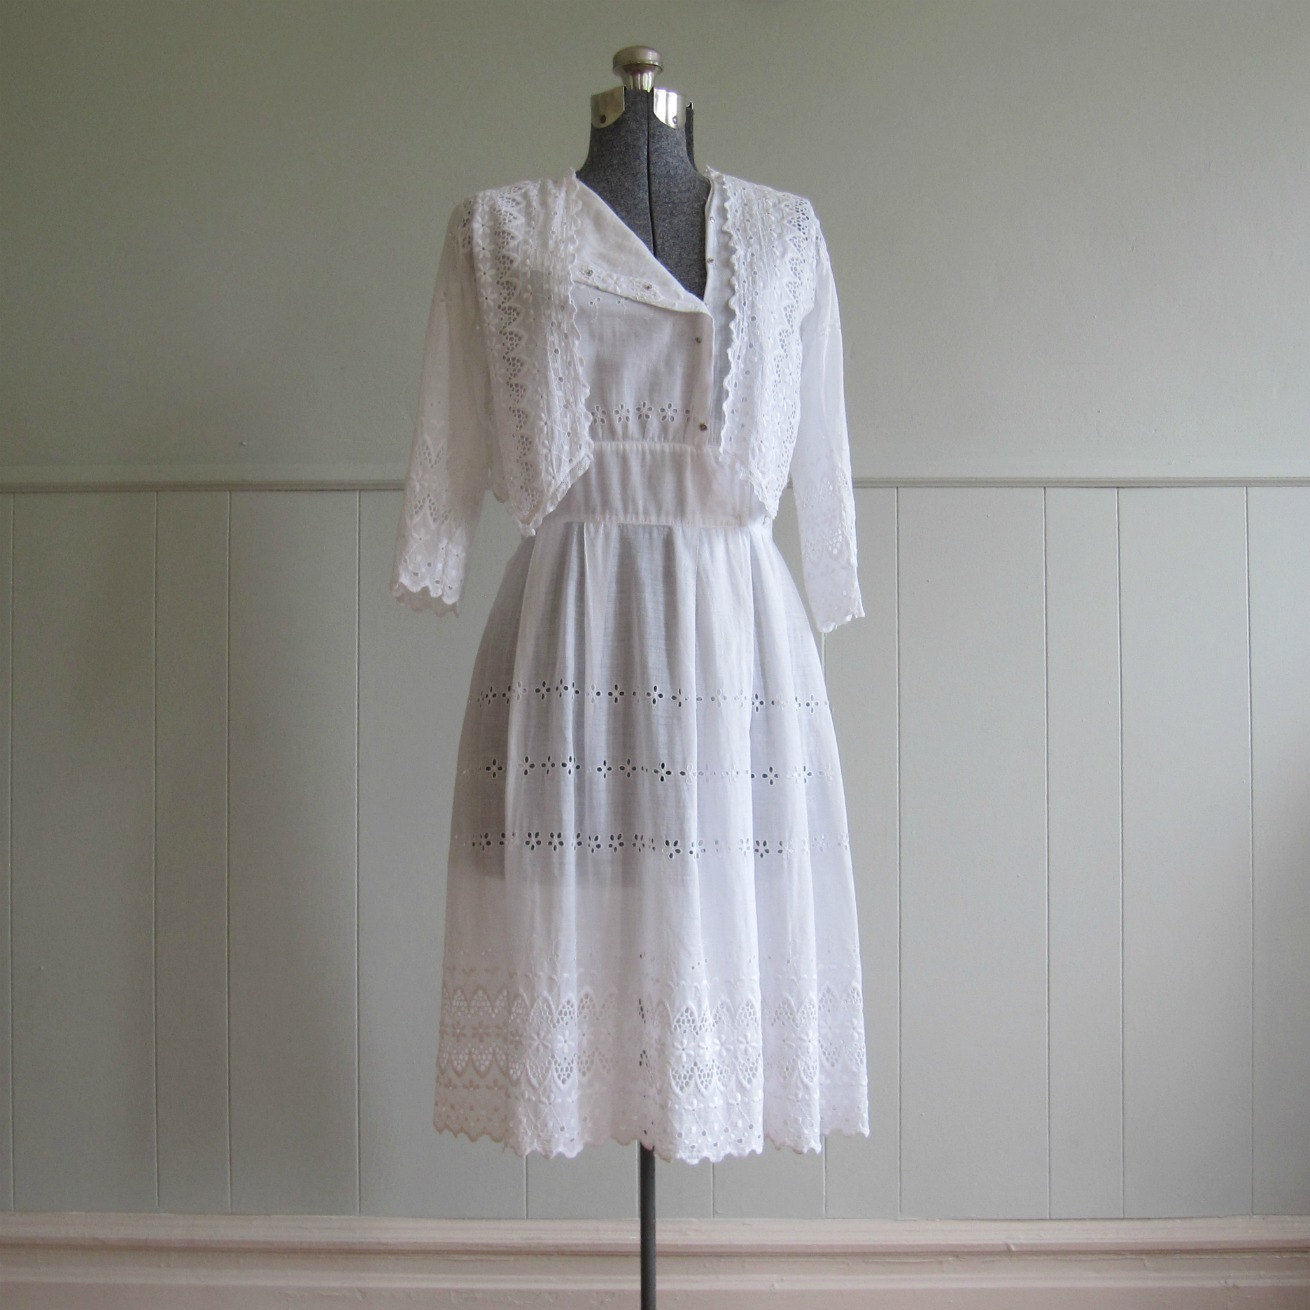 Edwardian Dresses for Sale submited images